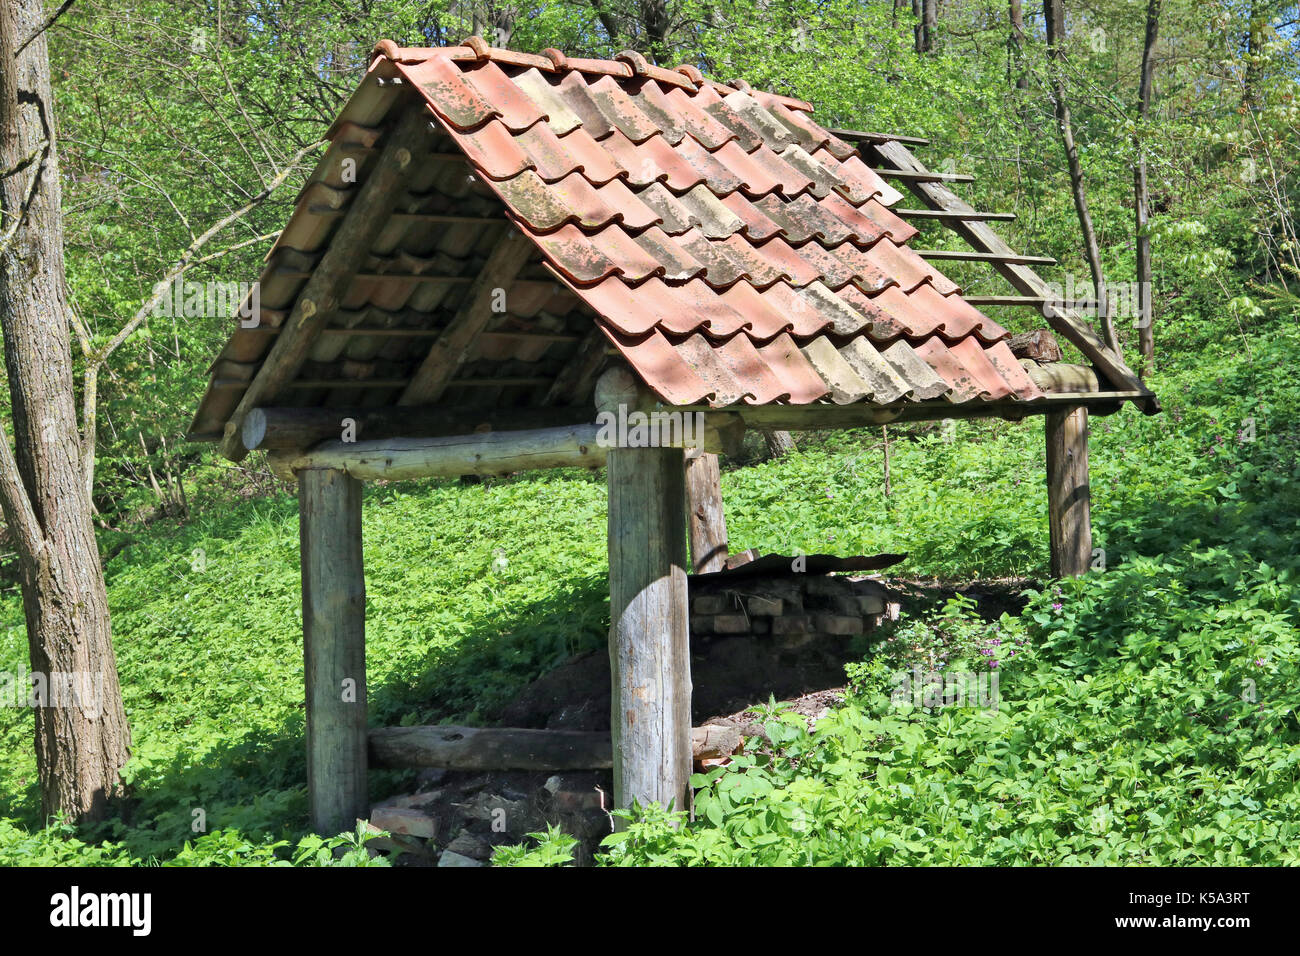 A Shed Without Walls For Storage Of Firewood Is Located On The Slope Of A Forest  Hill. Spring Sunny Day